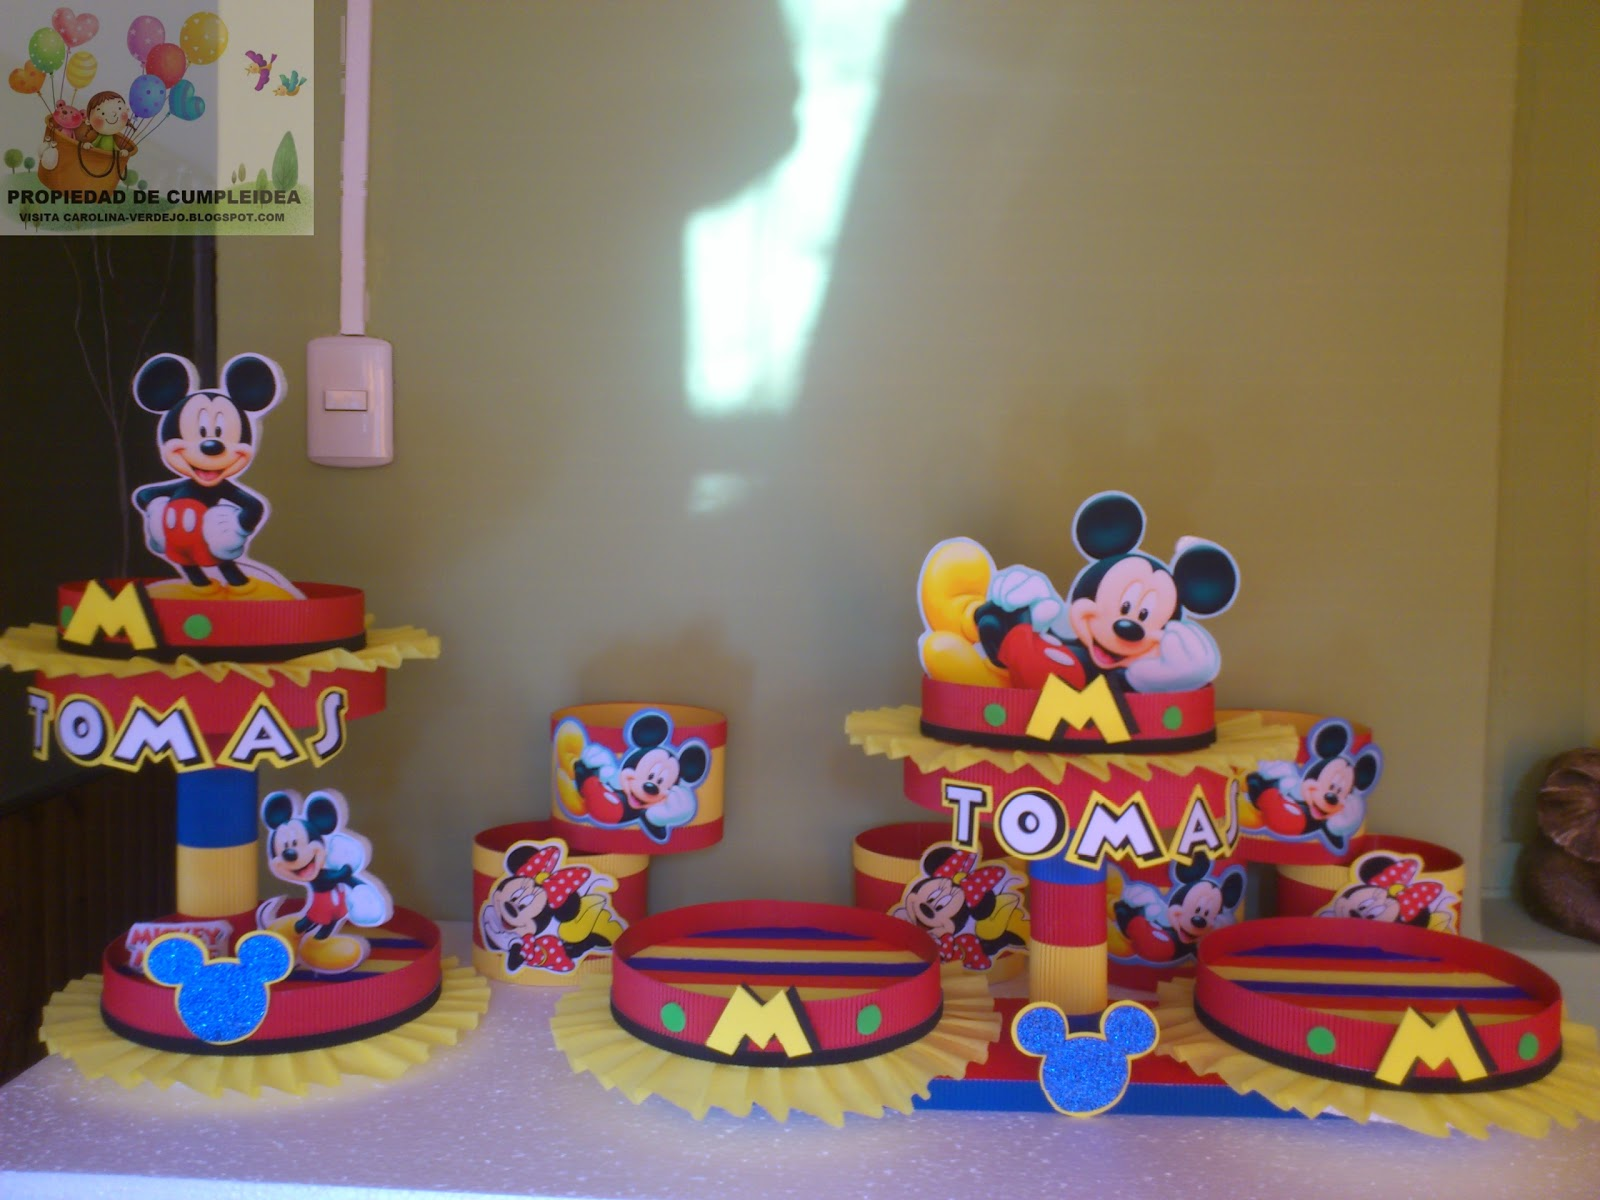 Decoracion estilo mexicano para fiesta for Decoracion la casa de mickey mouse